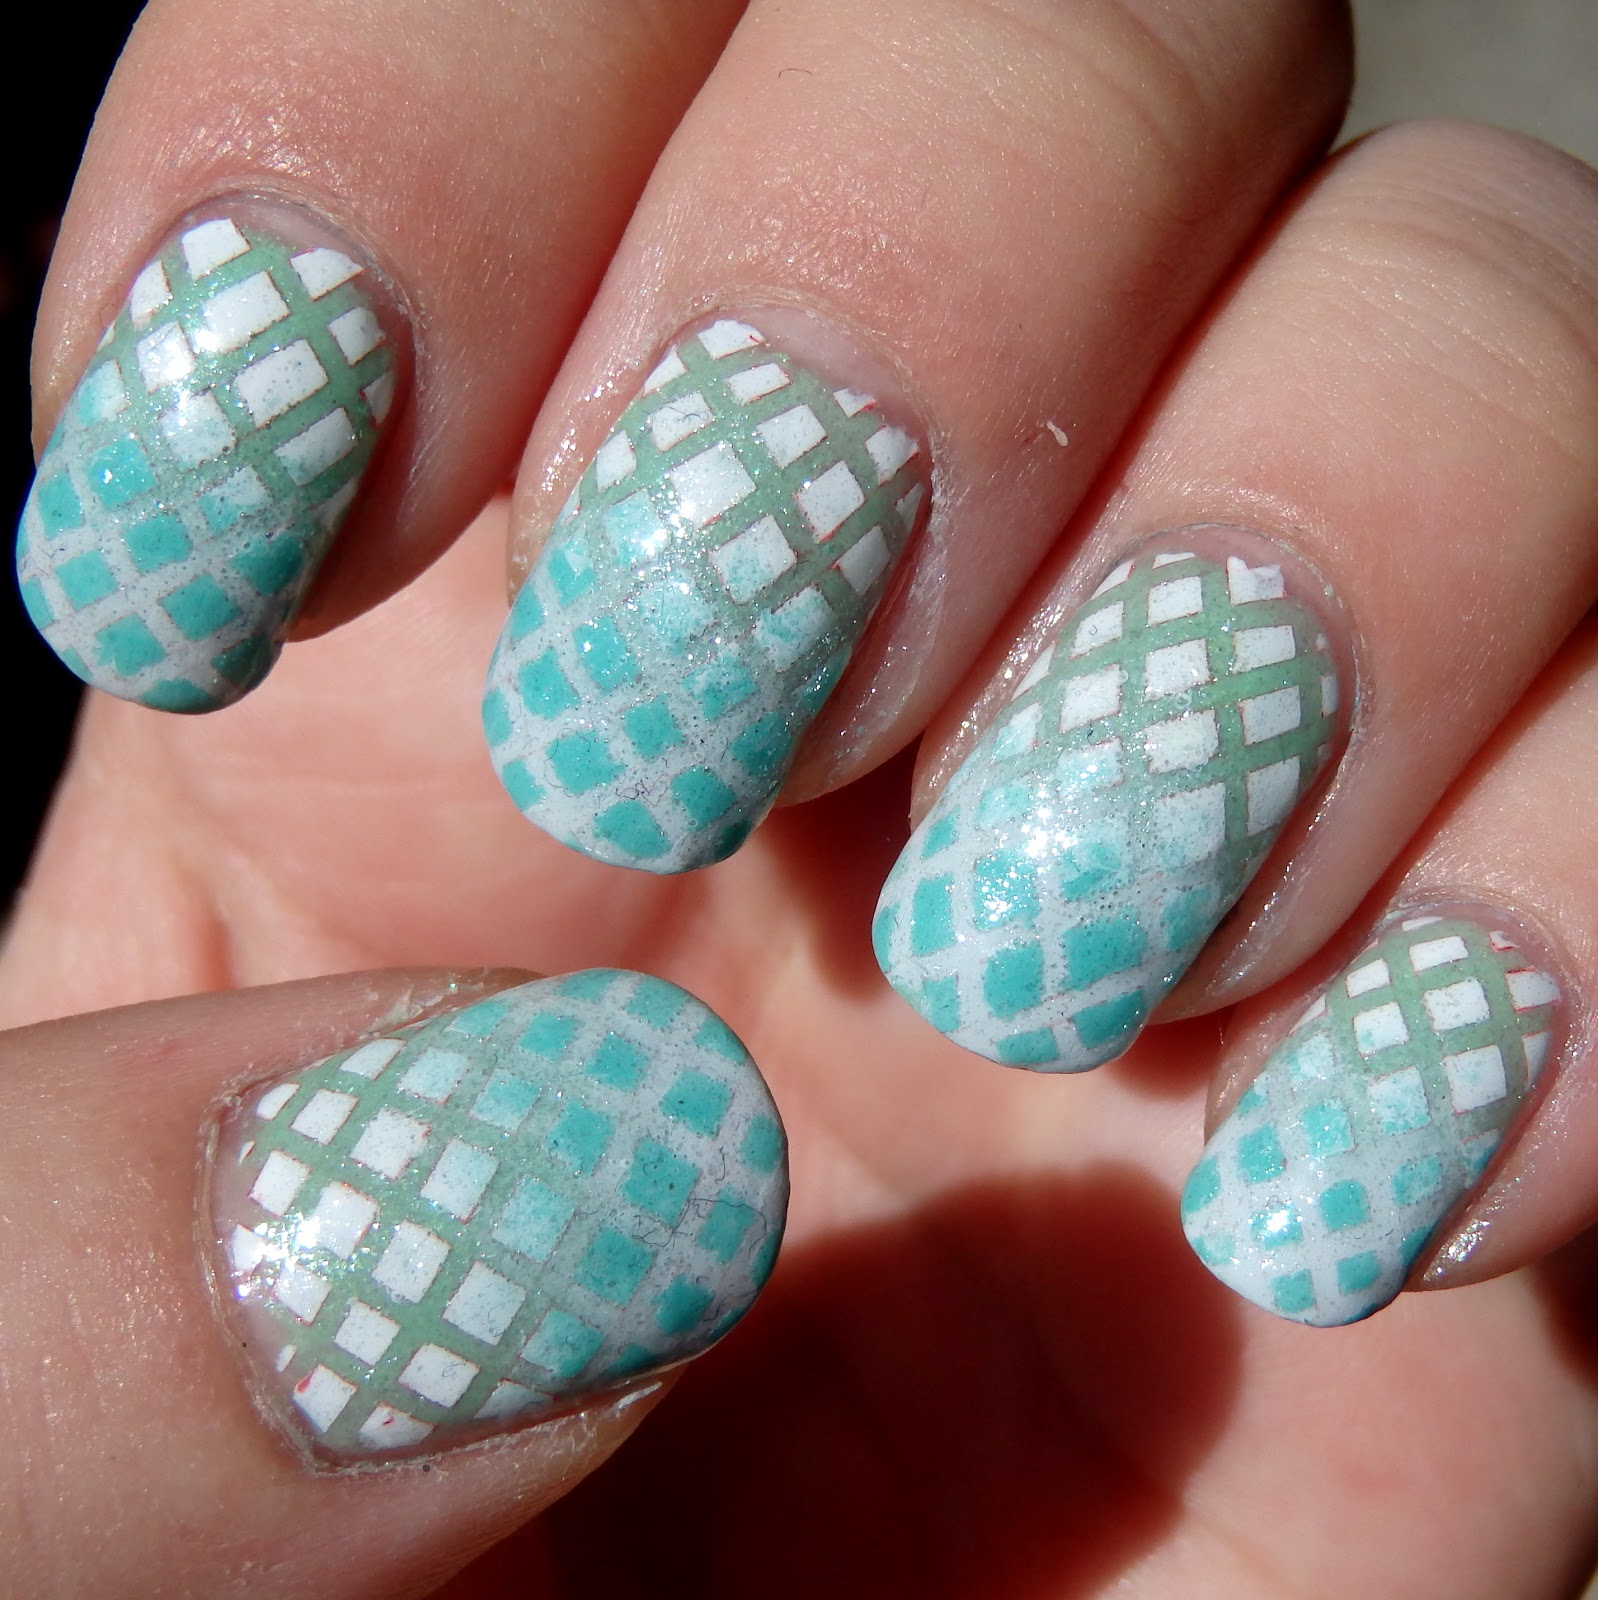 I Don T Actually Have A Lot To Say For This Nail Art Started With Grant From Lynbdesigns Oobleck Opi My Boyfriend Scales Walls Then Put Down